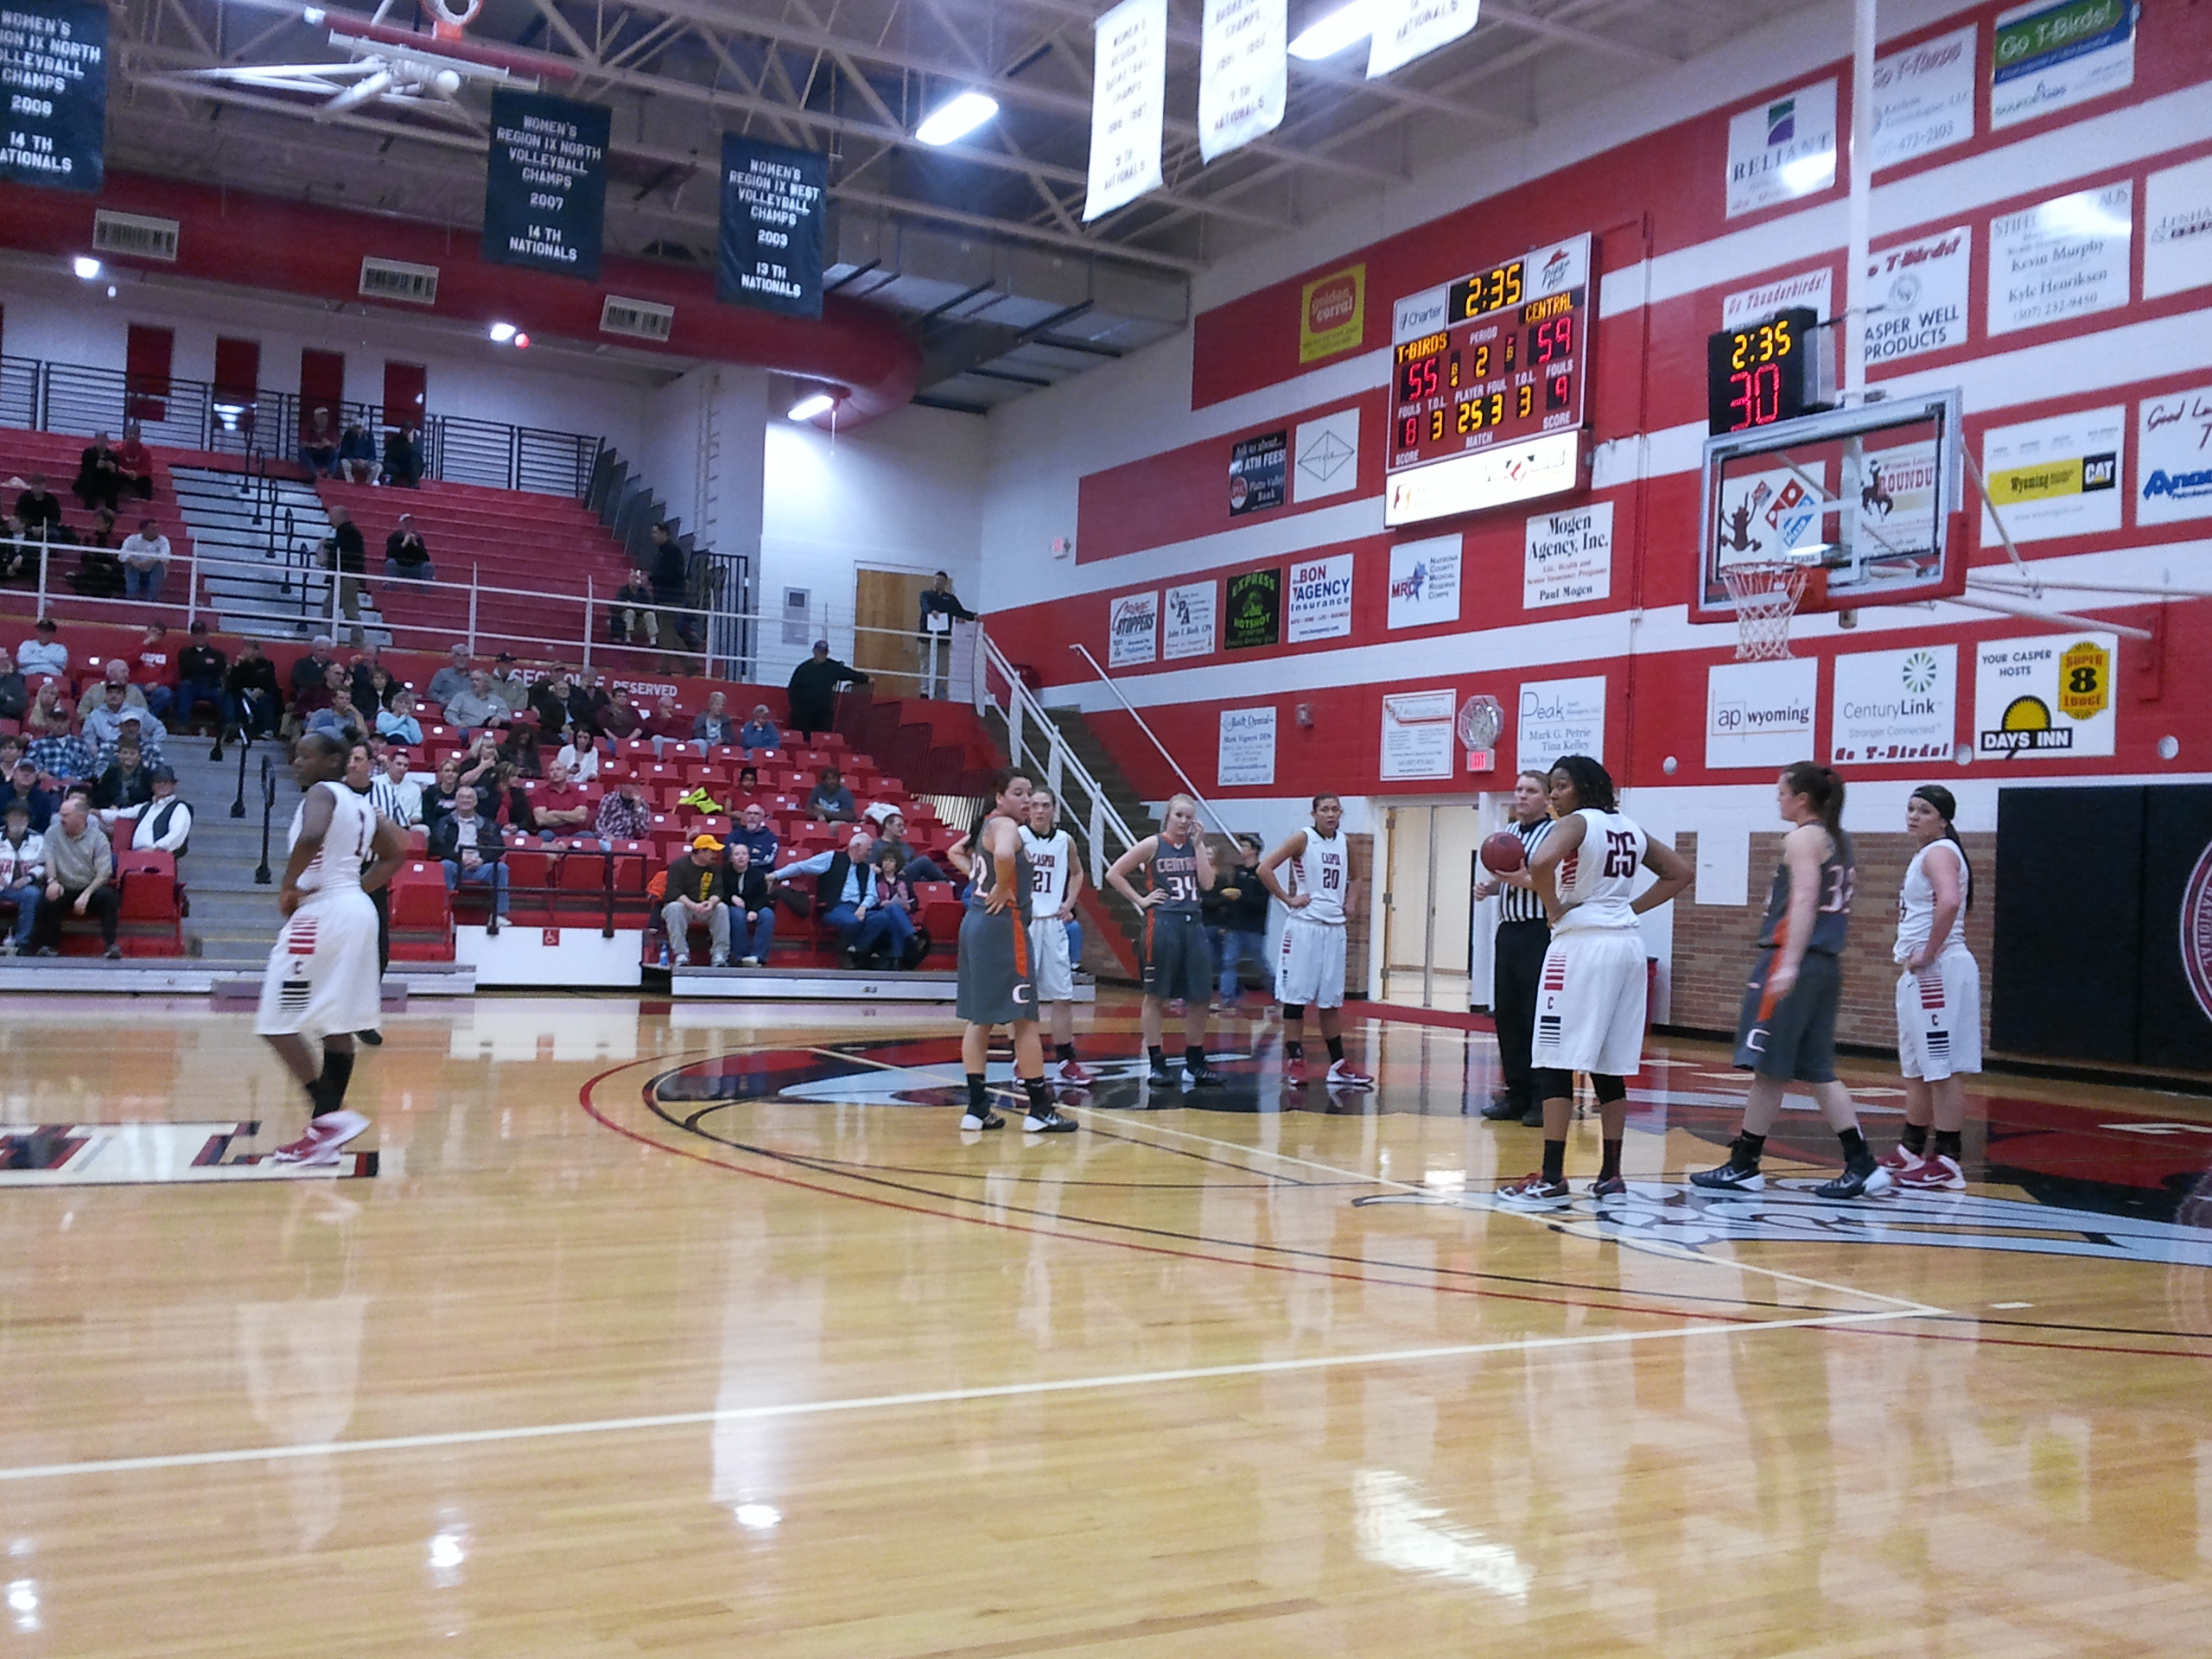 Casper College Basketball